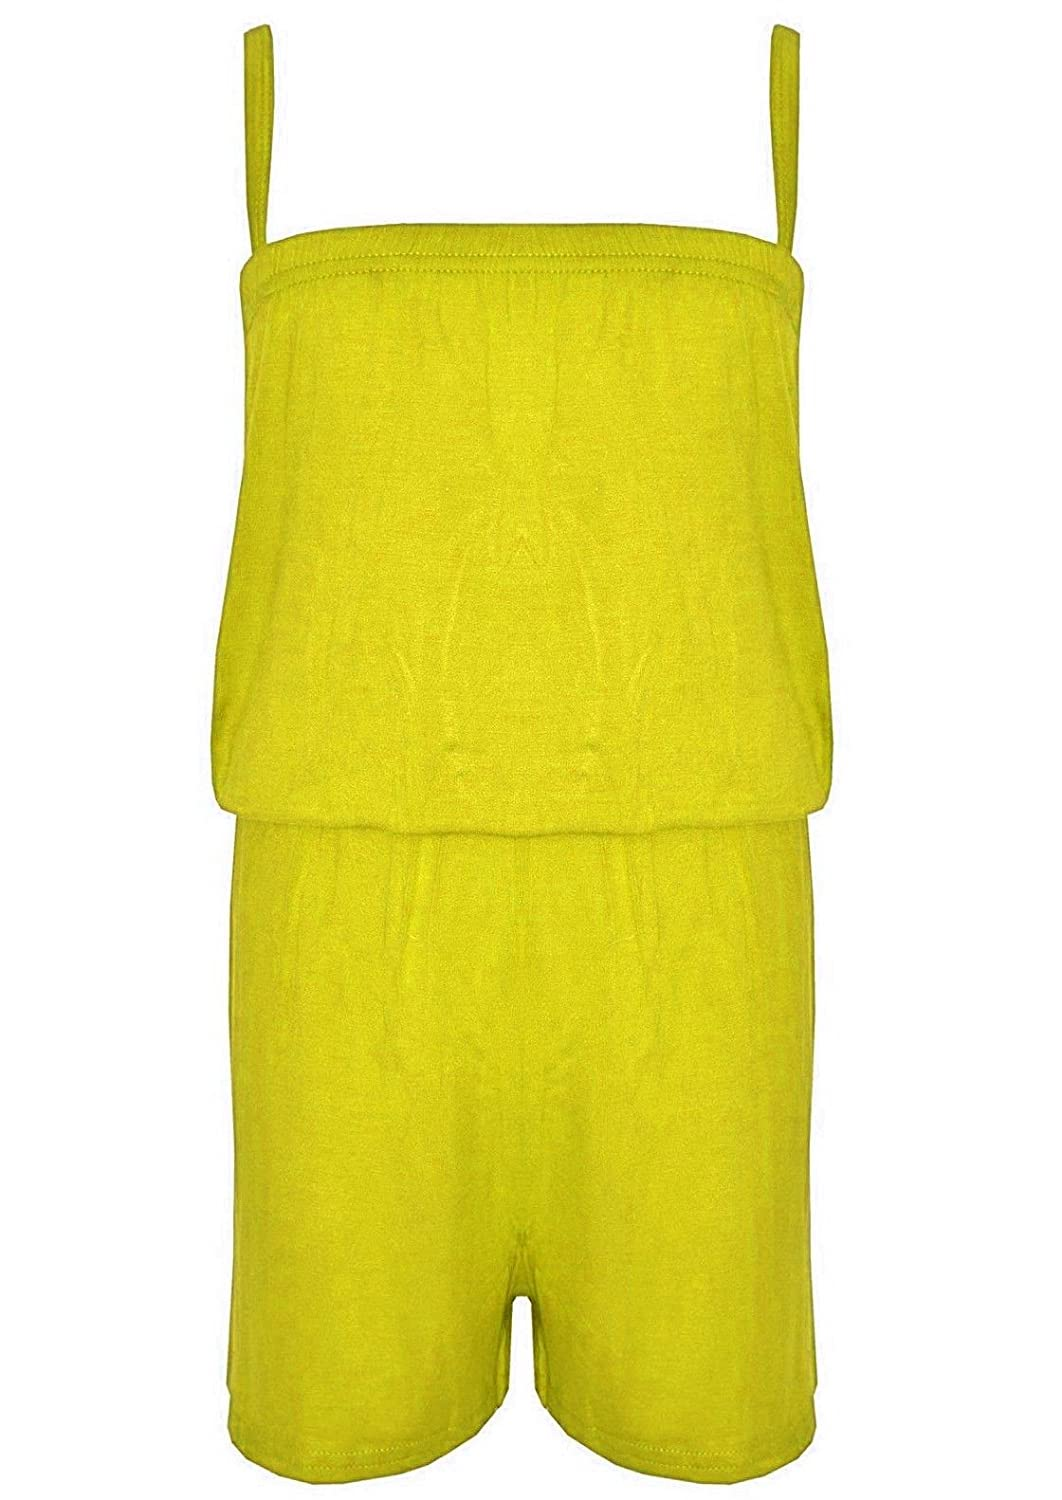 Papaval Girls Jumpsuit Kids Plain Colour Playsuit All in One Summer Dress 2-14 Years